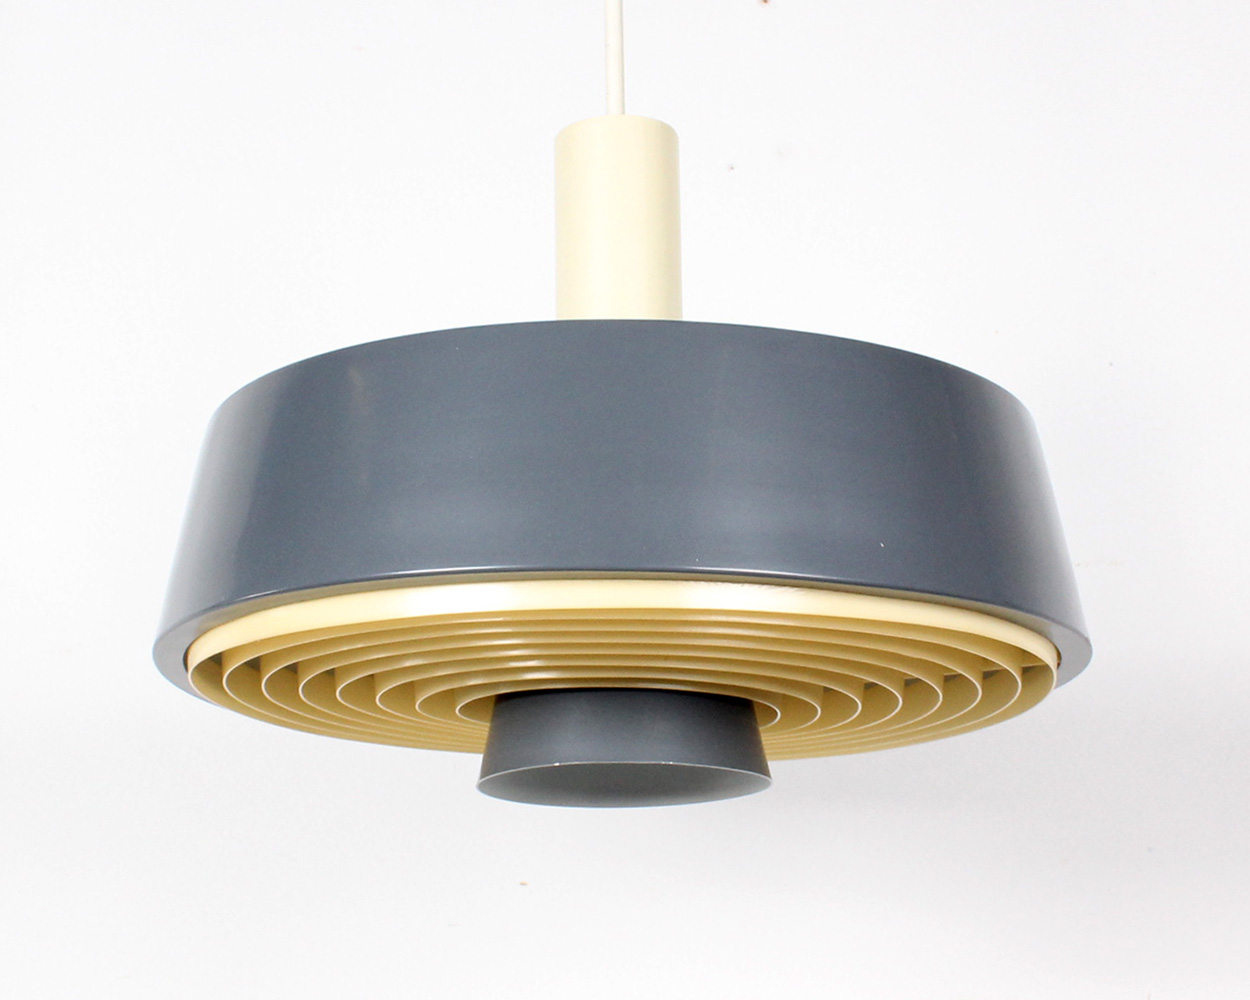 Retro Hanglamp Vintage.New Arrivals Www Studio1900 Nl Vintage Design Furniture